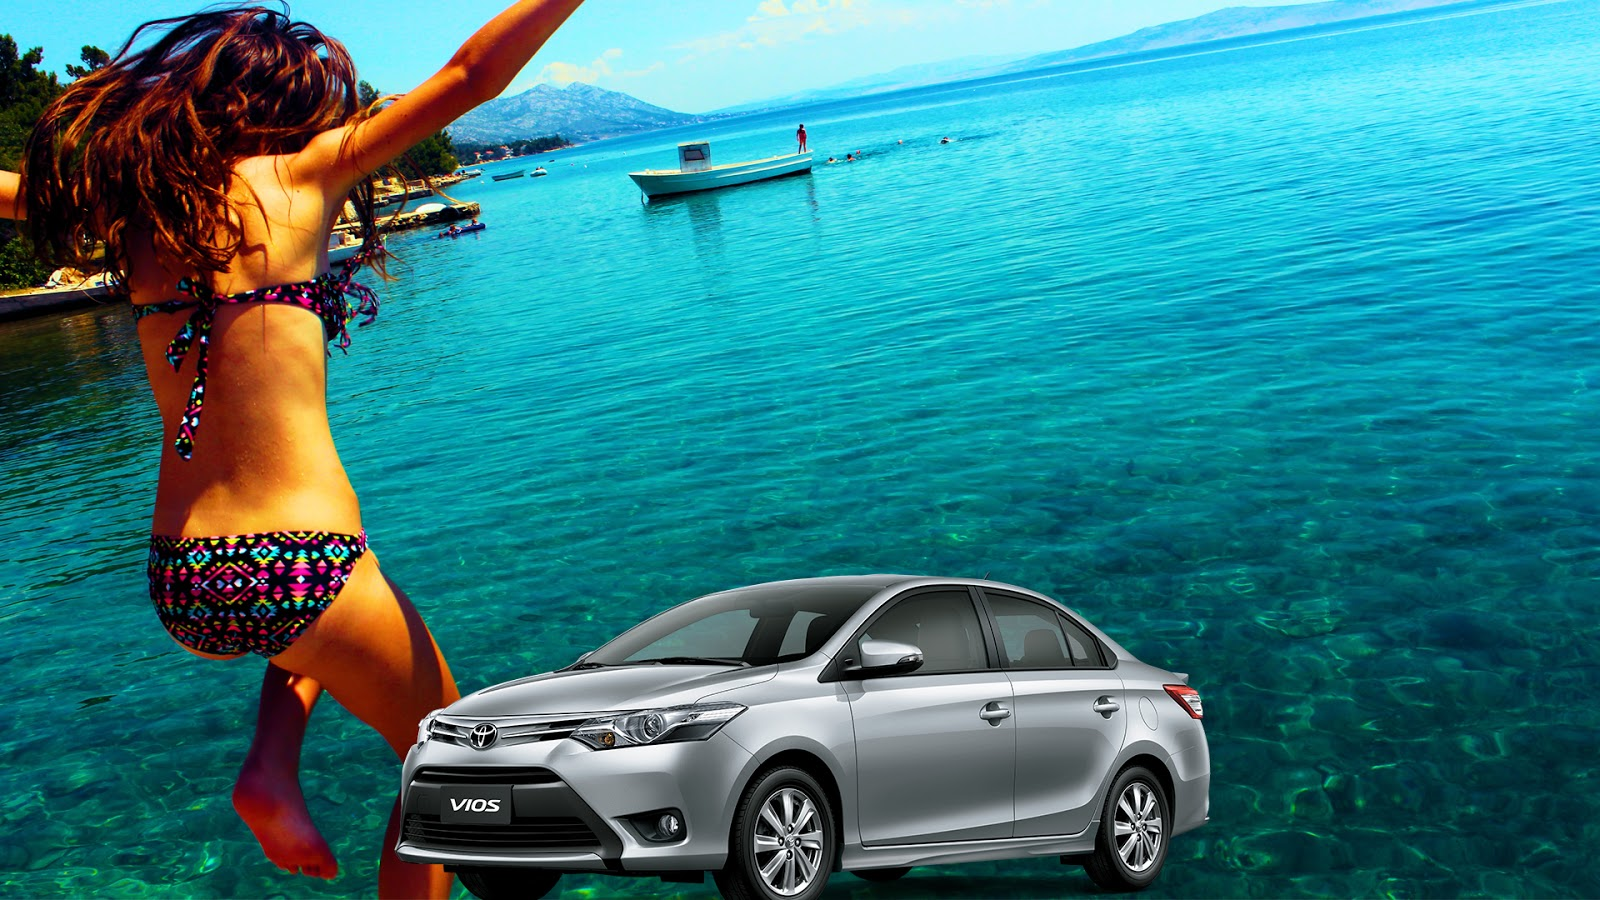 Explore the beauty of the beaches of western visayas philippines when you go on a roadtrip with your toyota vios exciting low downpayment promos for loan